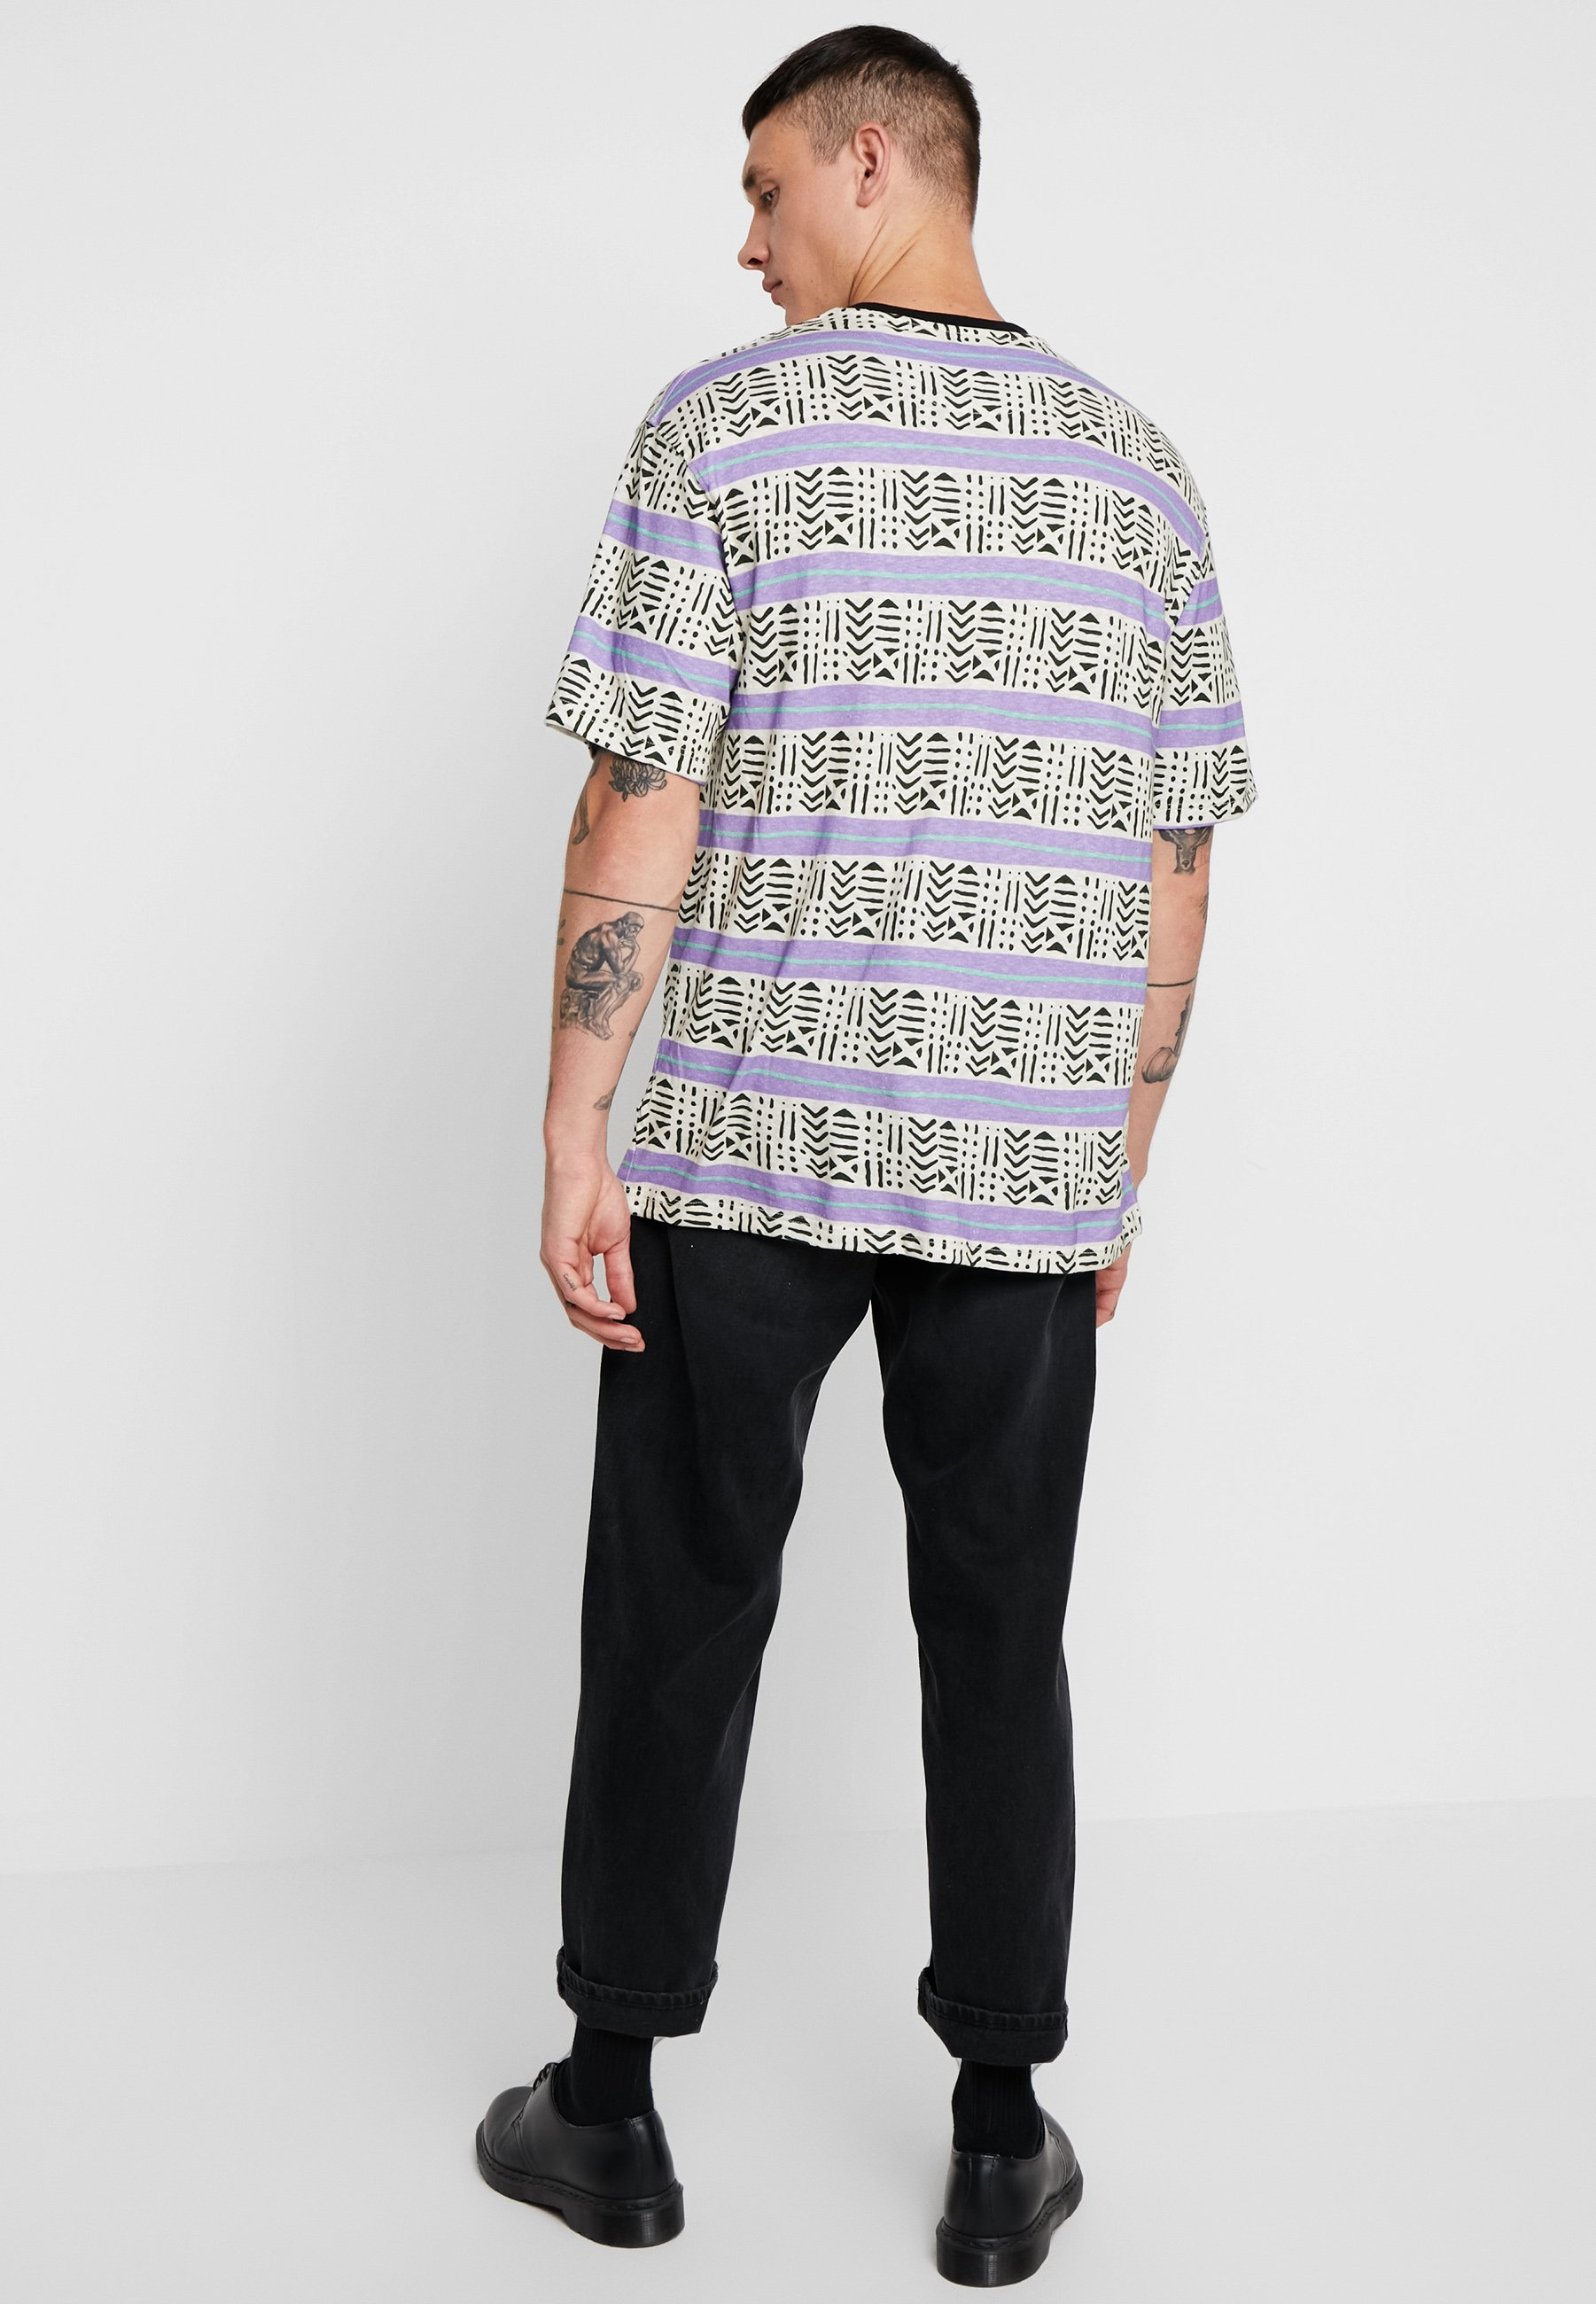 ImpriméMulti coloured T shirt Topman yvIY7bf6g